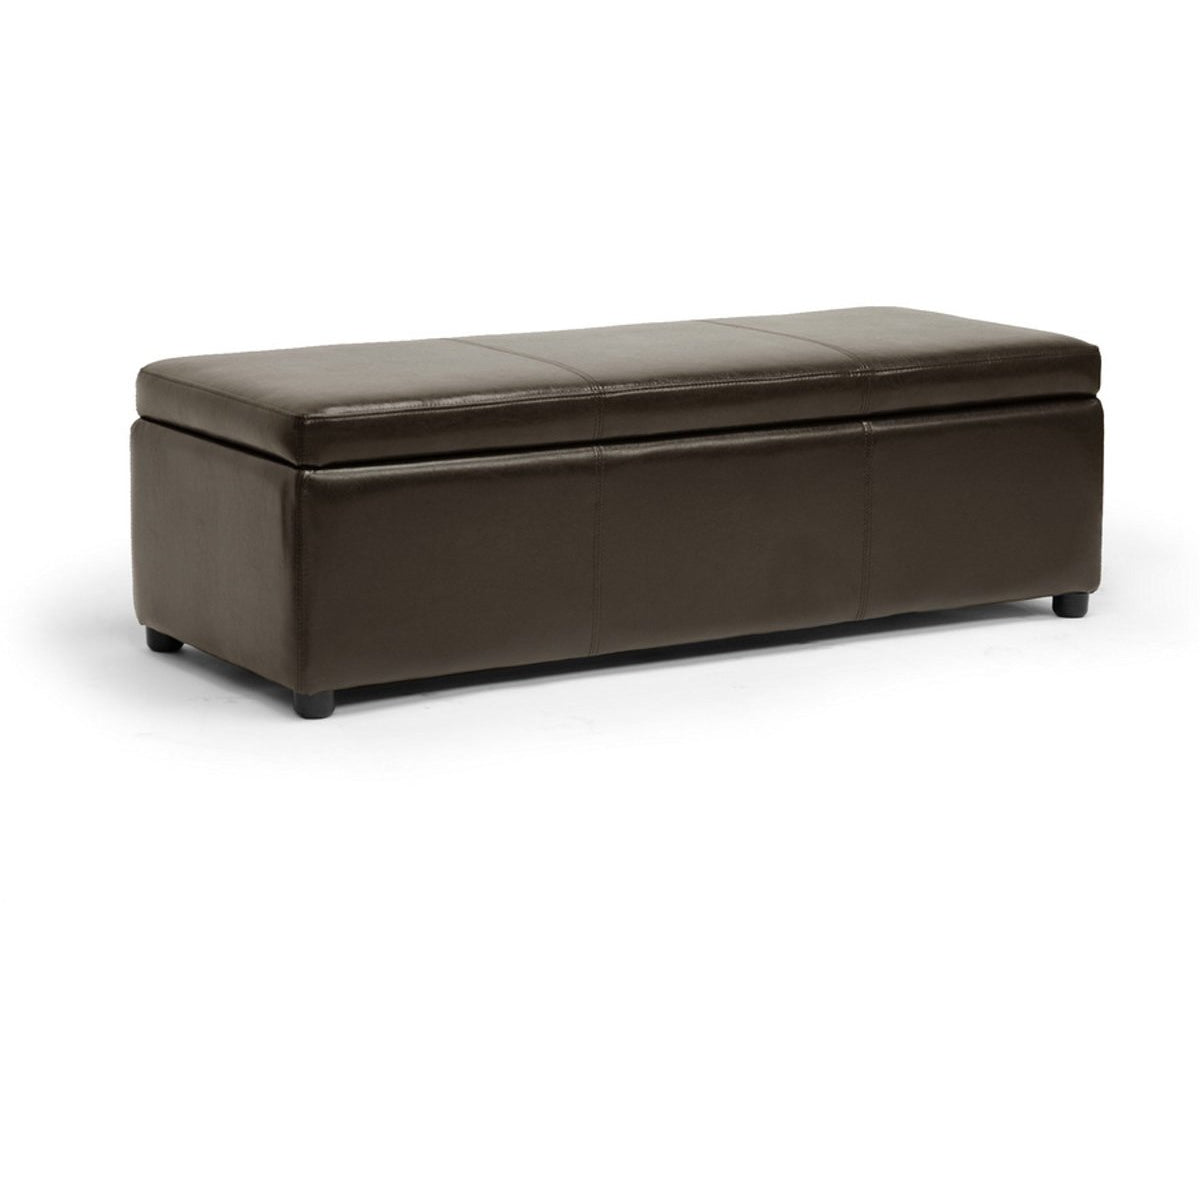 Baxton Studio Dennehy Dark Brown Modern Ottoman Baxton Studio-ottomans-Minimal And Modern - 1